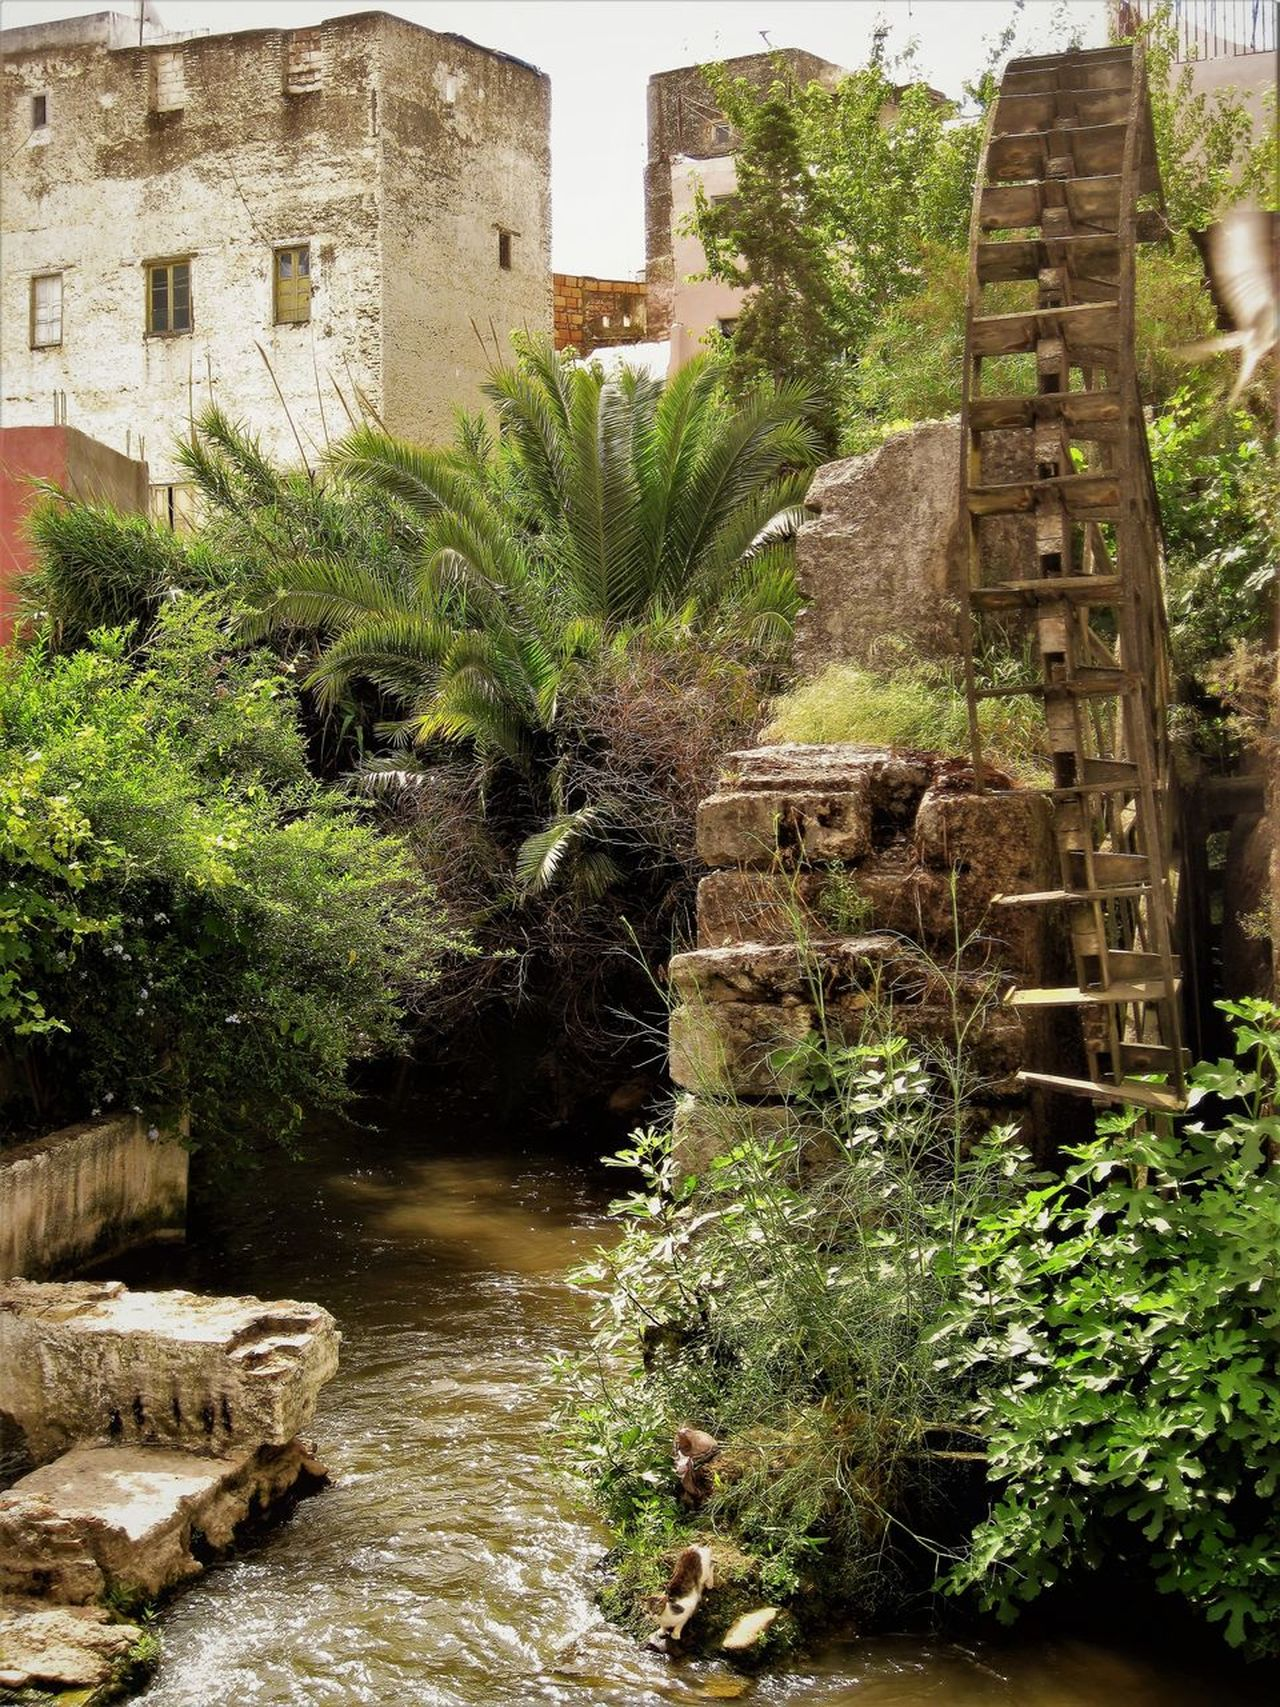 Ancient Architecture Building Exterior Built Structure Day History Nature No People Outdoors Tree Water Wheel Watermill